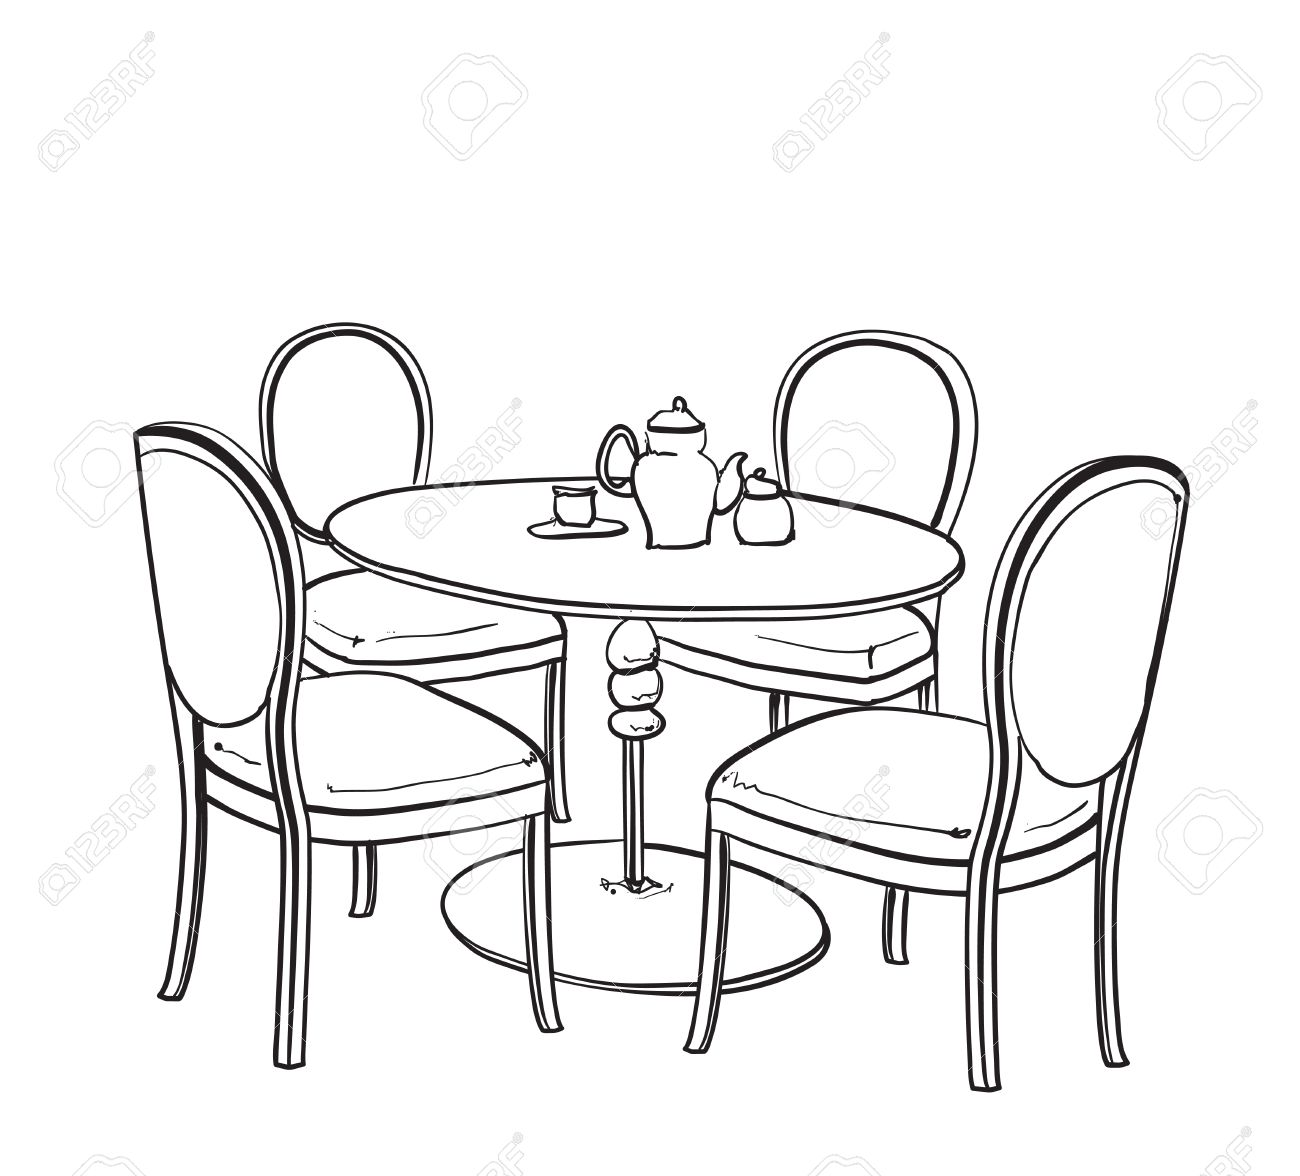 table and chair drawing at getdrawings com